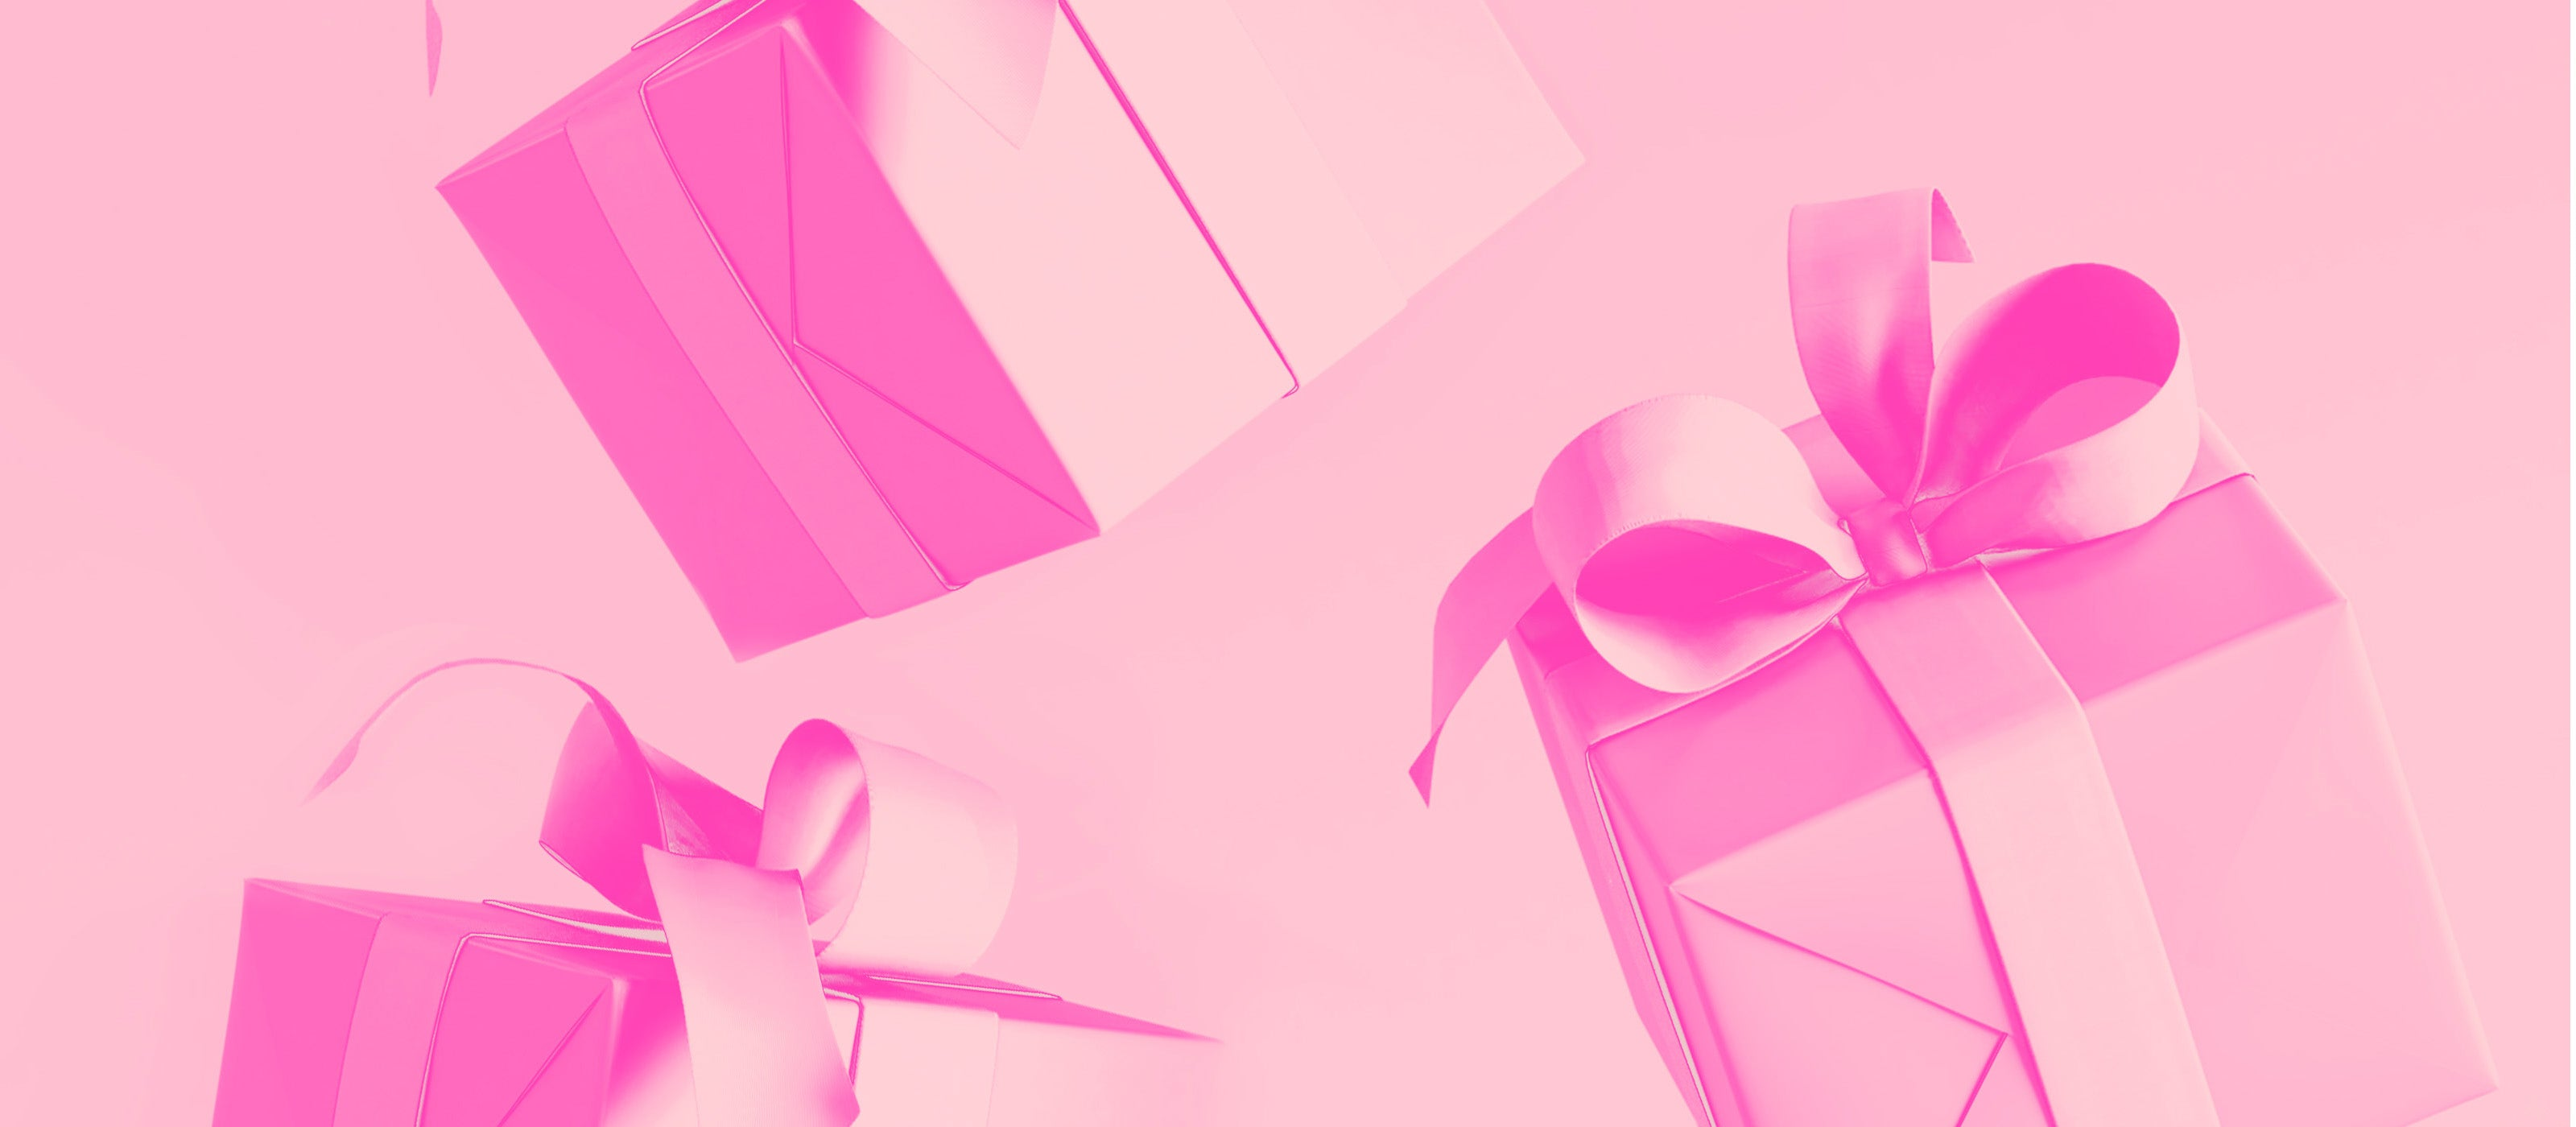 Pink Friday Image